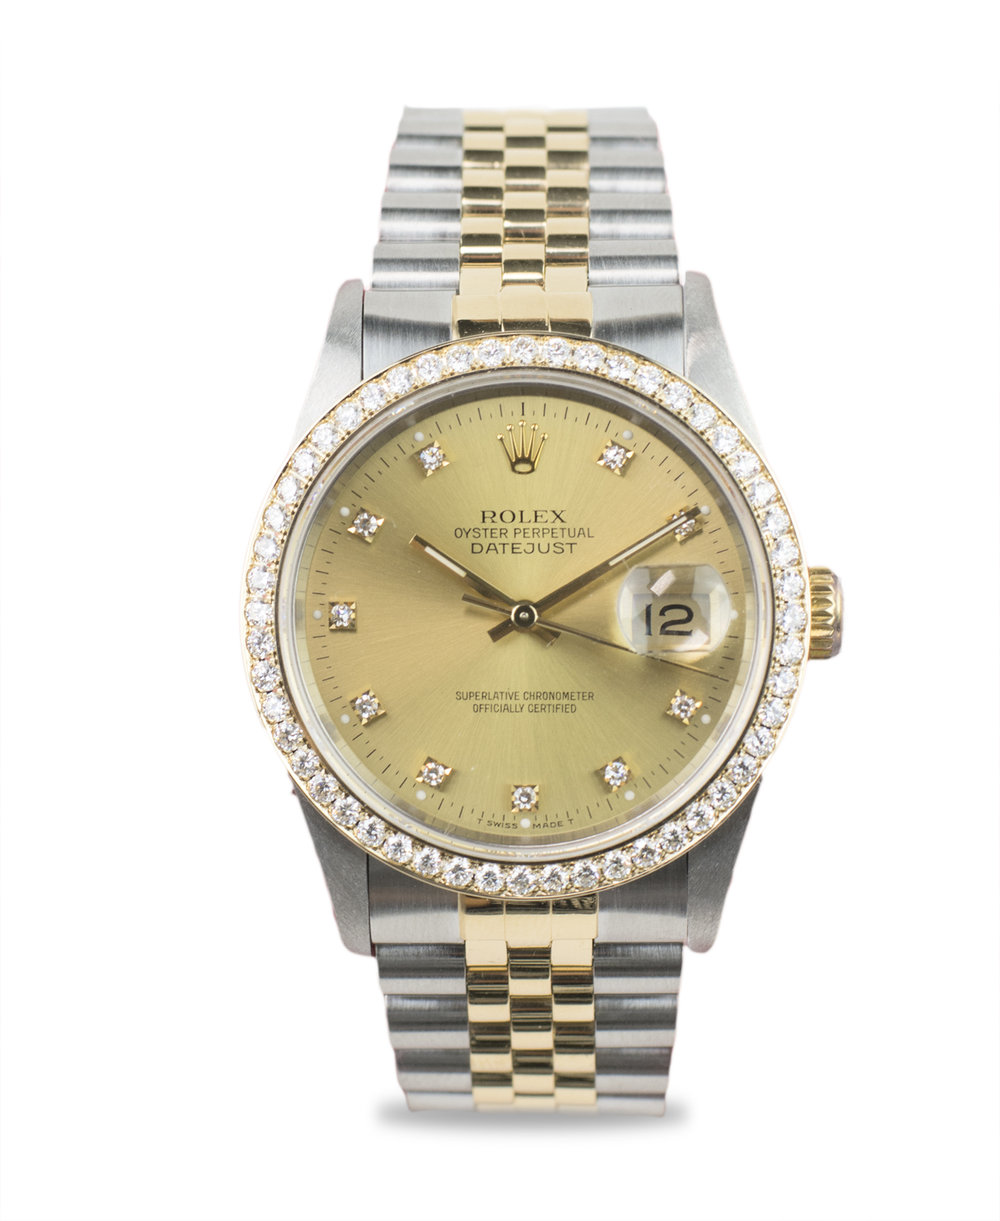 Swiss Crown USA - Pre-Owned Rolex Watches